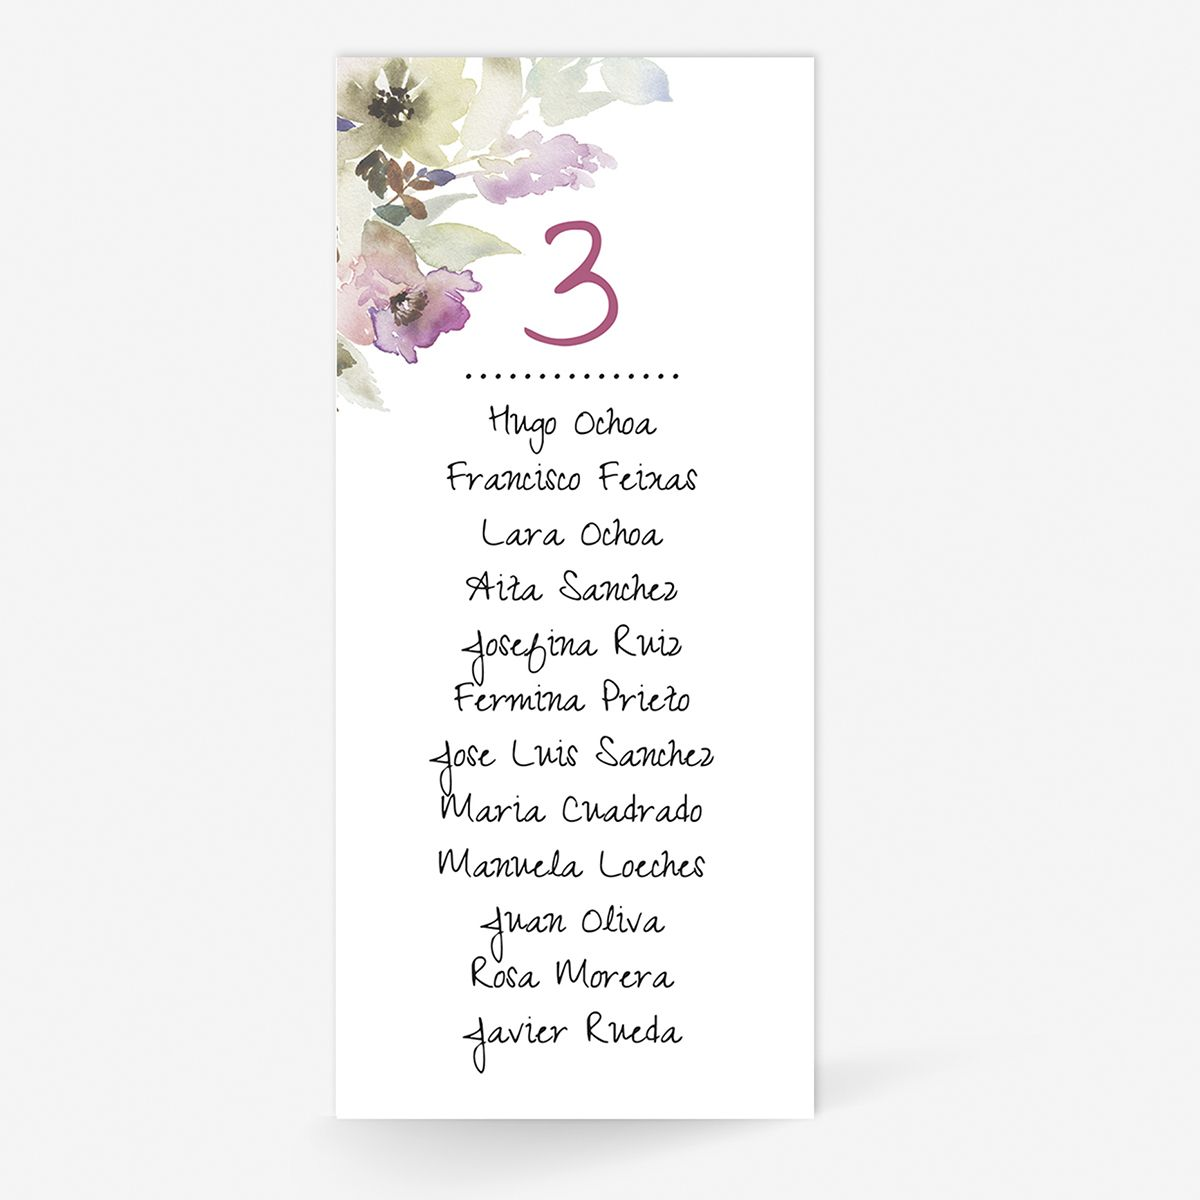 Plan de mesa (Seating plan) boda Arabela